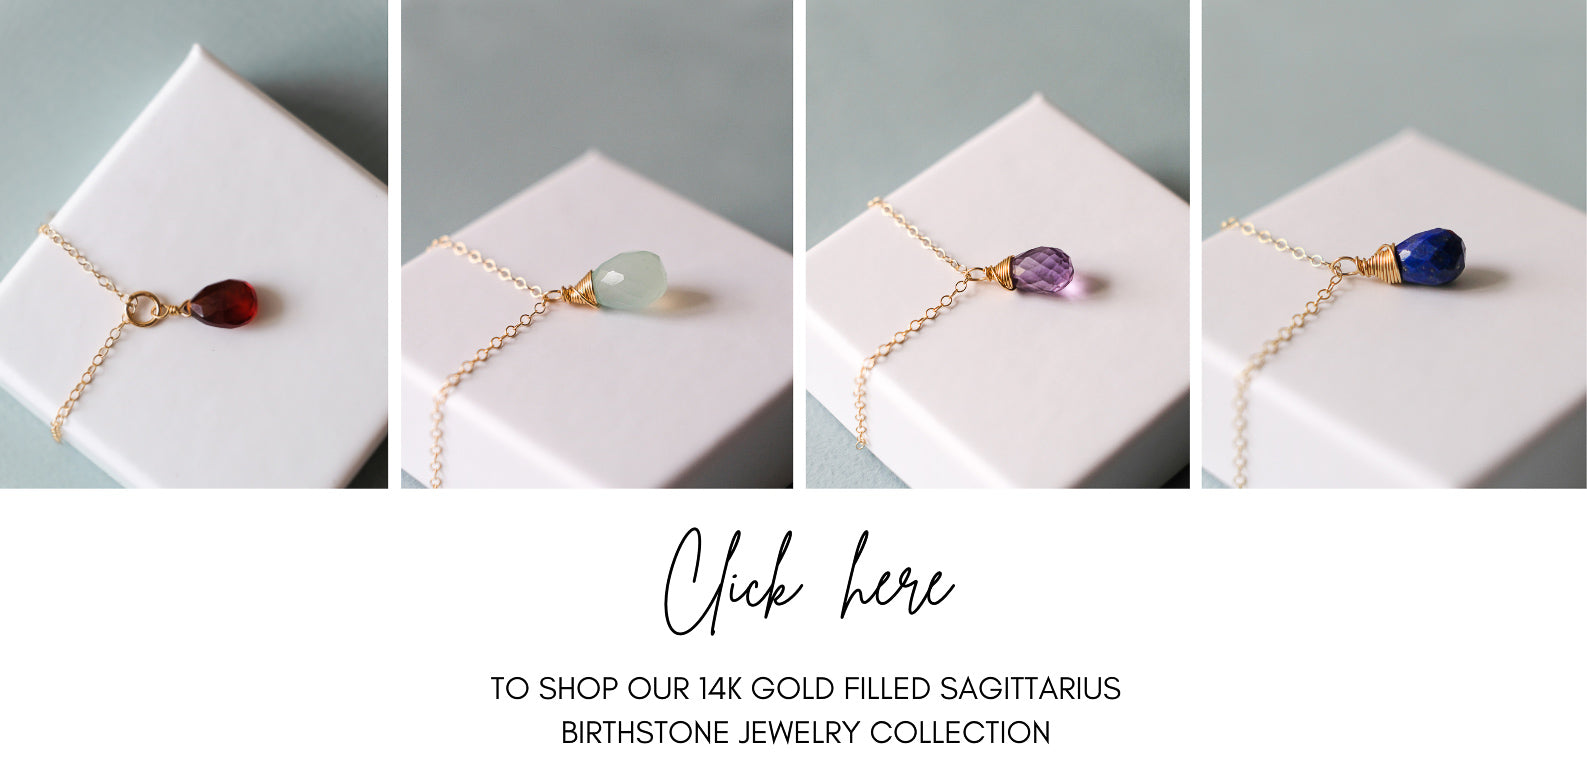 14K Gold Filled Sagittarius Birthstone Jewelry Collection | Inspiration Her